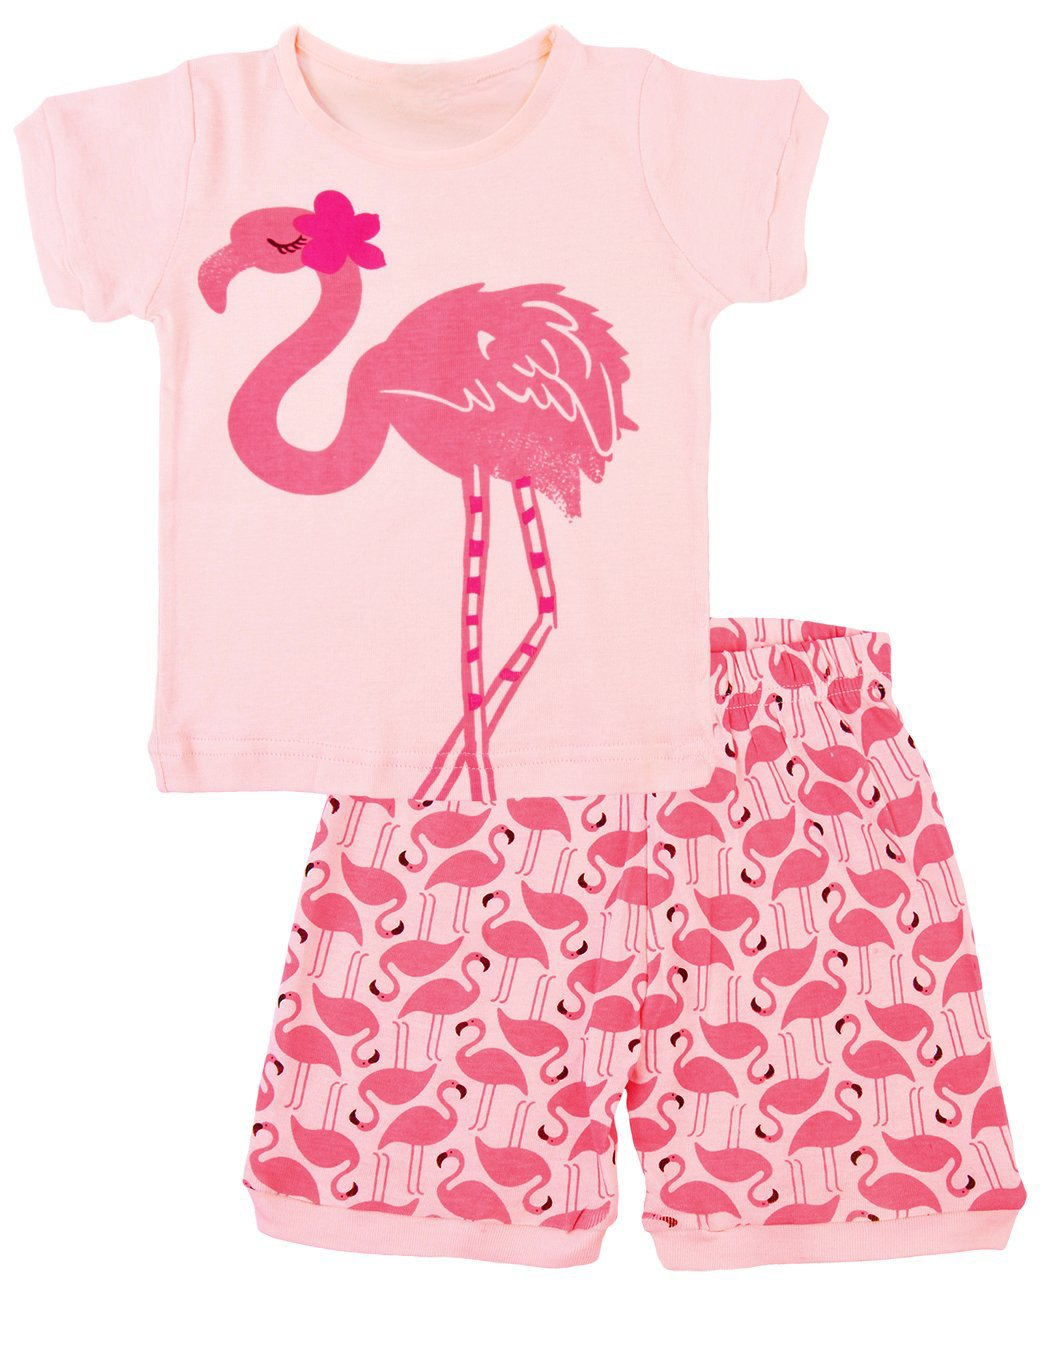 Girls Bird Pajamas Short Summer Clothes 100% Cotton Toddler Sleepwear for Kids Size 2T-7T (2T, Pink)